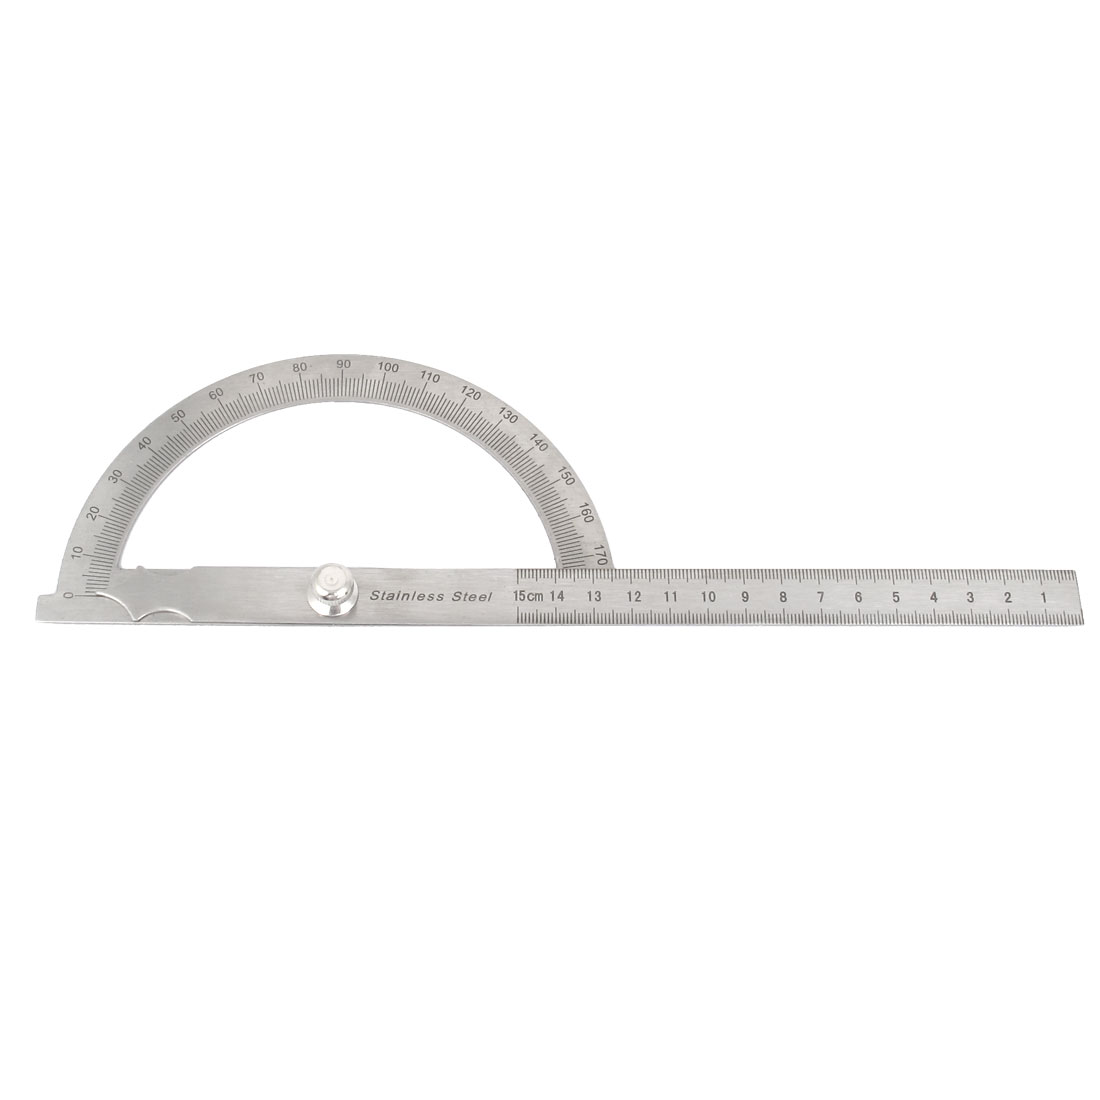 Metal Rotating 0-180 Degree Angle Gauge Protractor 15cm Straight Ruler Measuring Tool